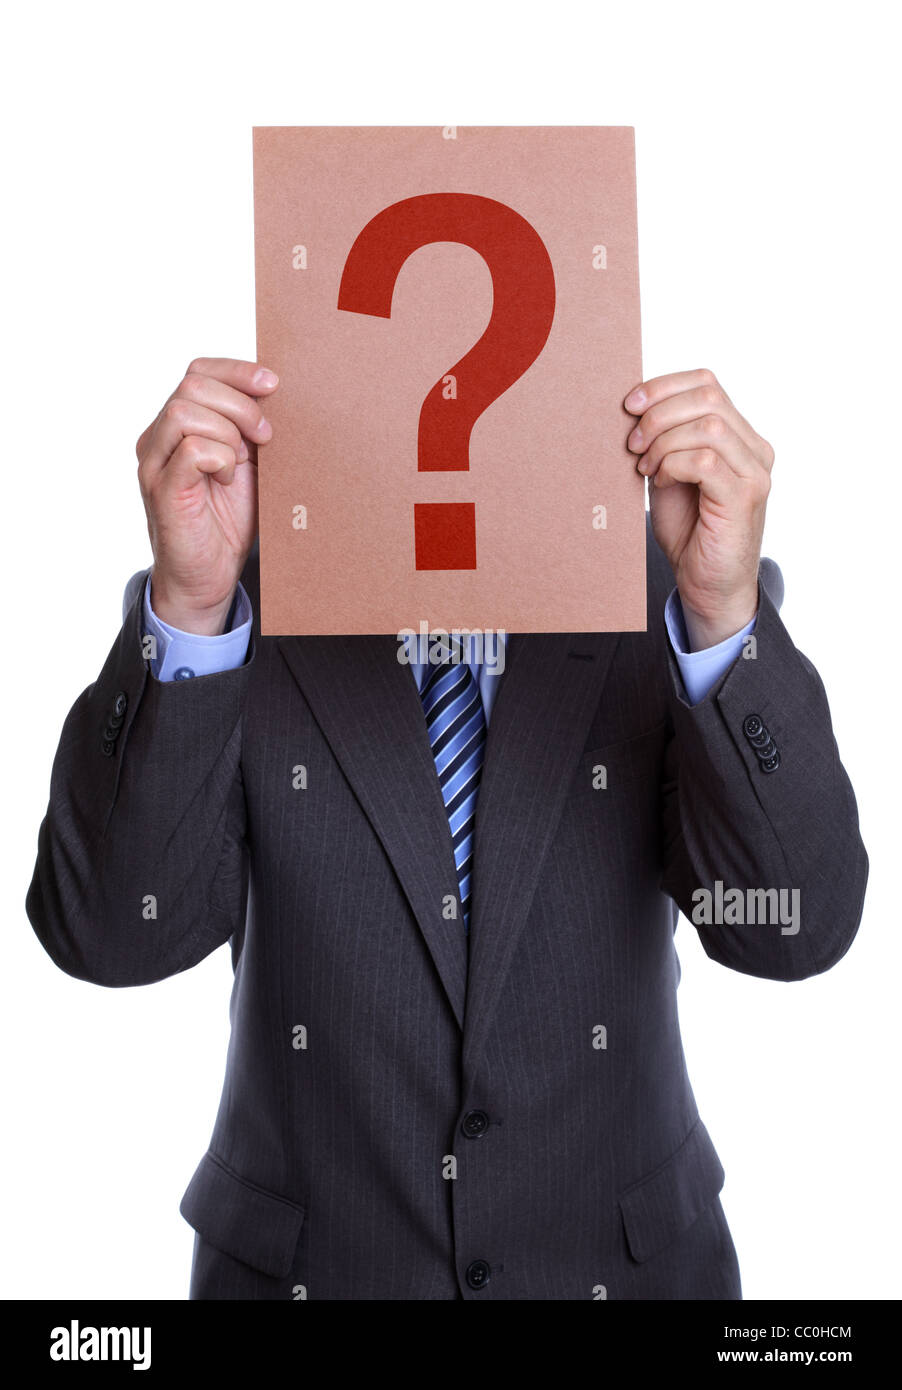 Man covering his face with a question mark sign - Stock Image